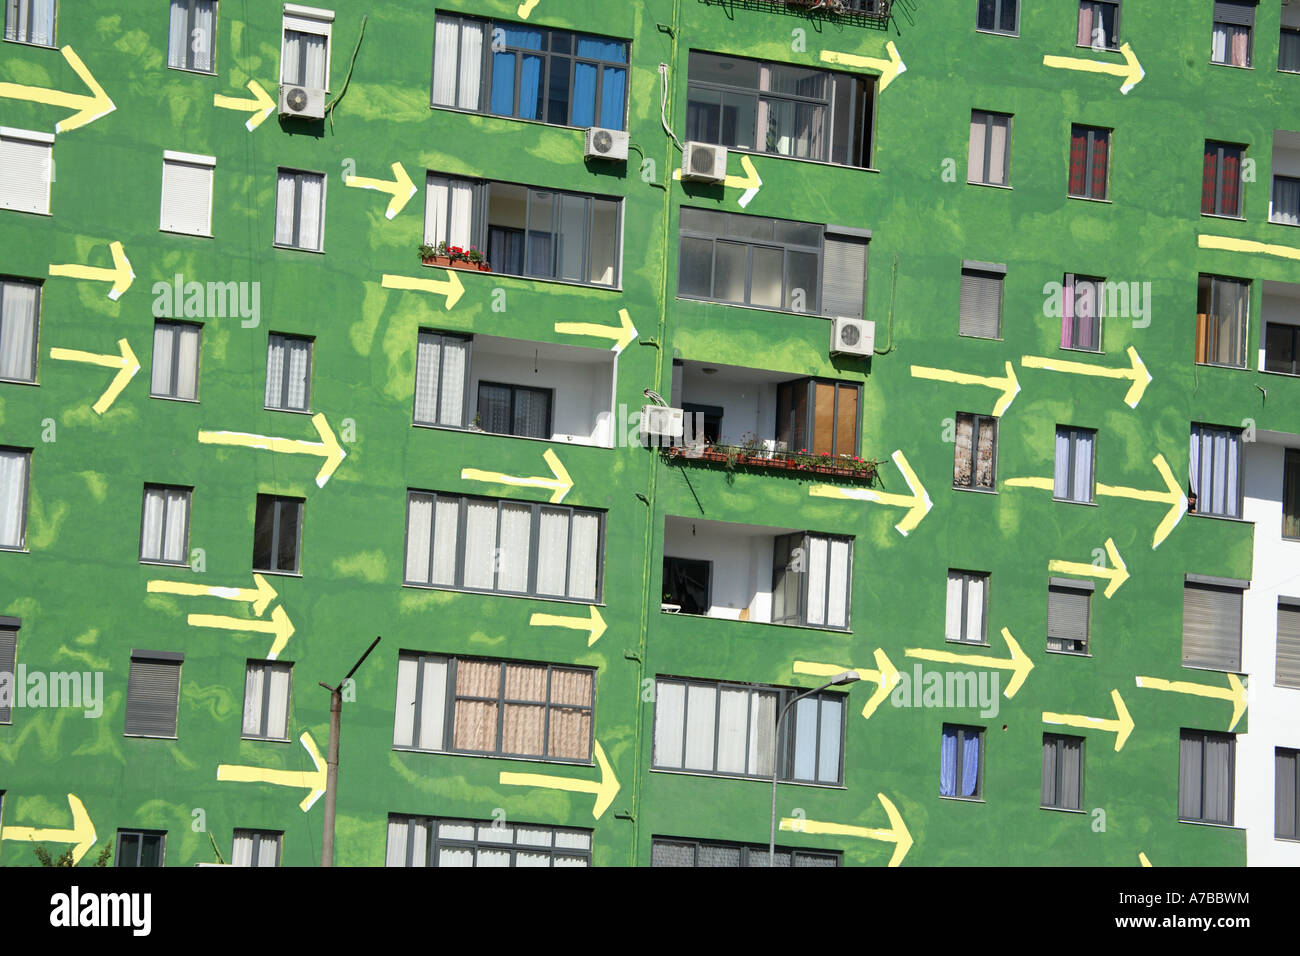 apartment building in Tirana, Albania with green walls and painted arrows - Stock Image